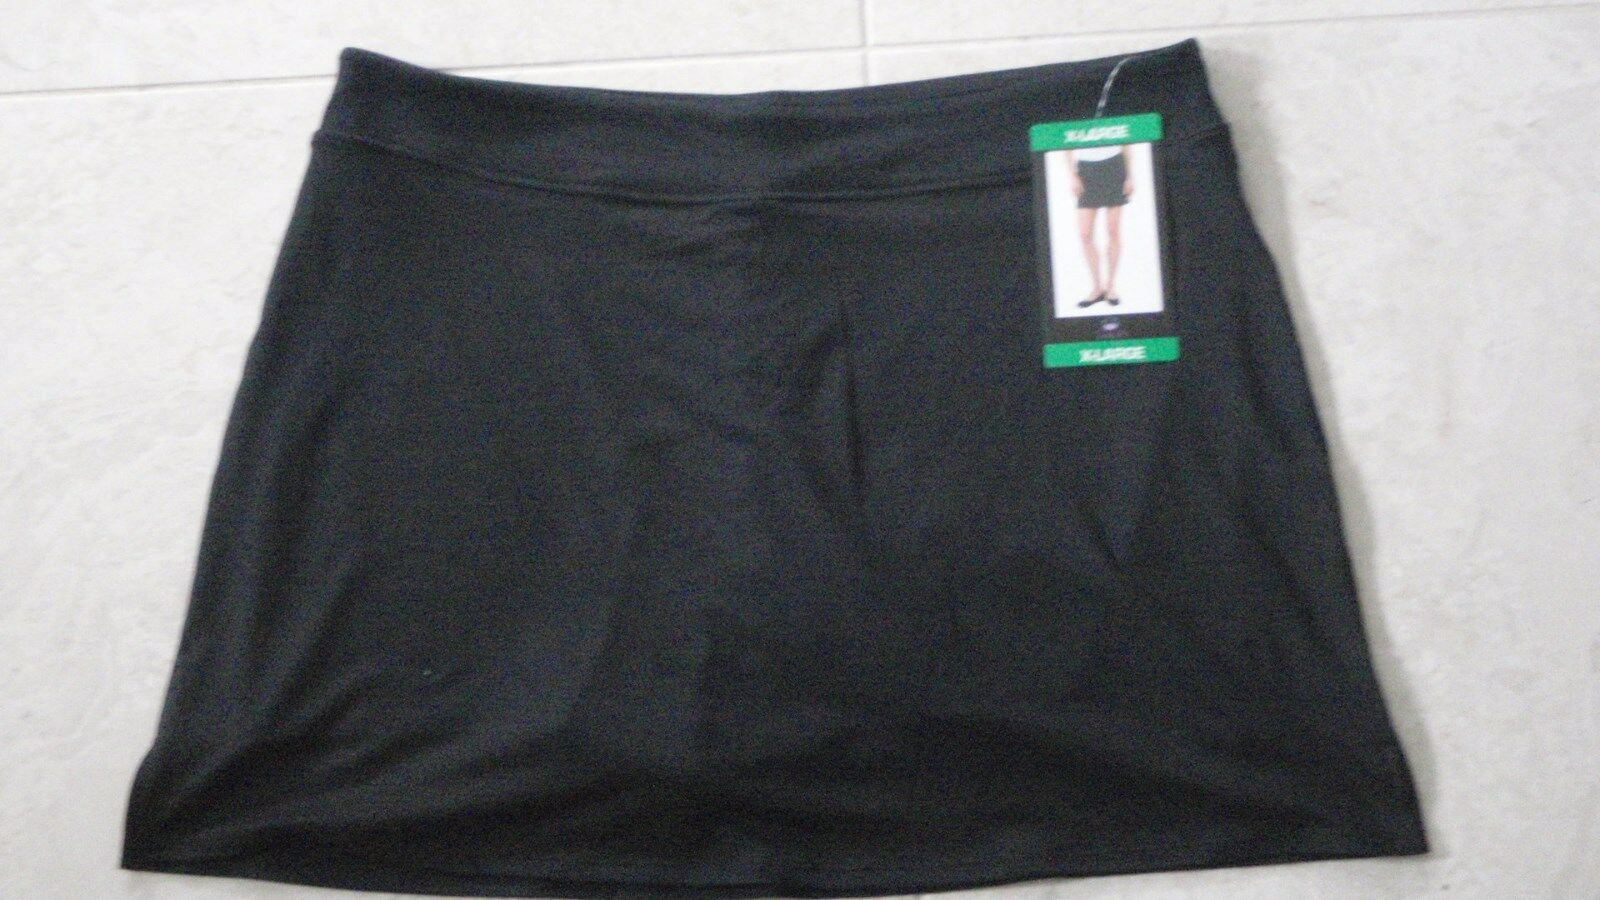 TRANQUILITY COLORADO CLOTHING YOGA GOLF SKORT SKIRT SOLID BLACK XL, EXTRA LARGE